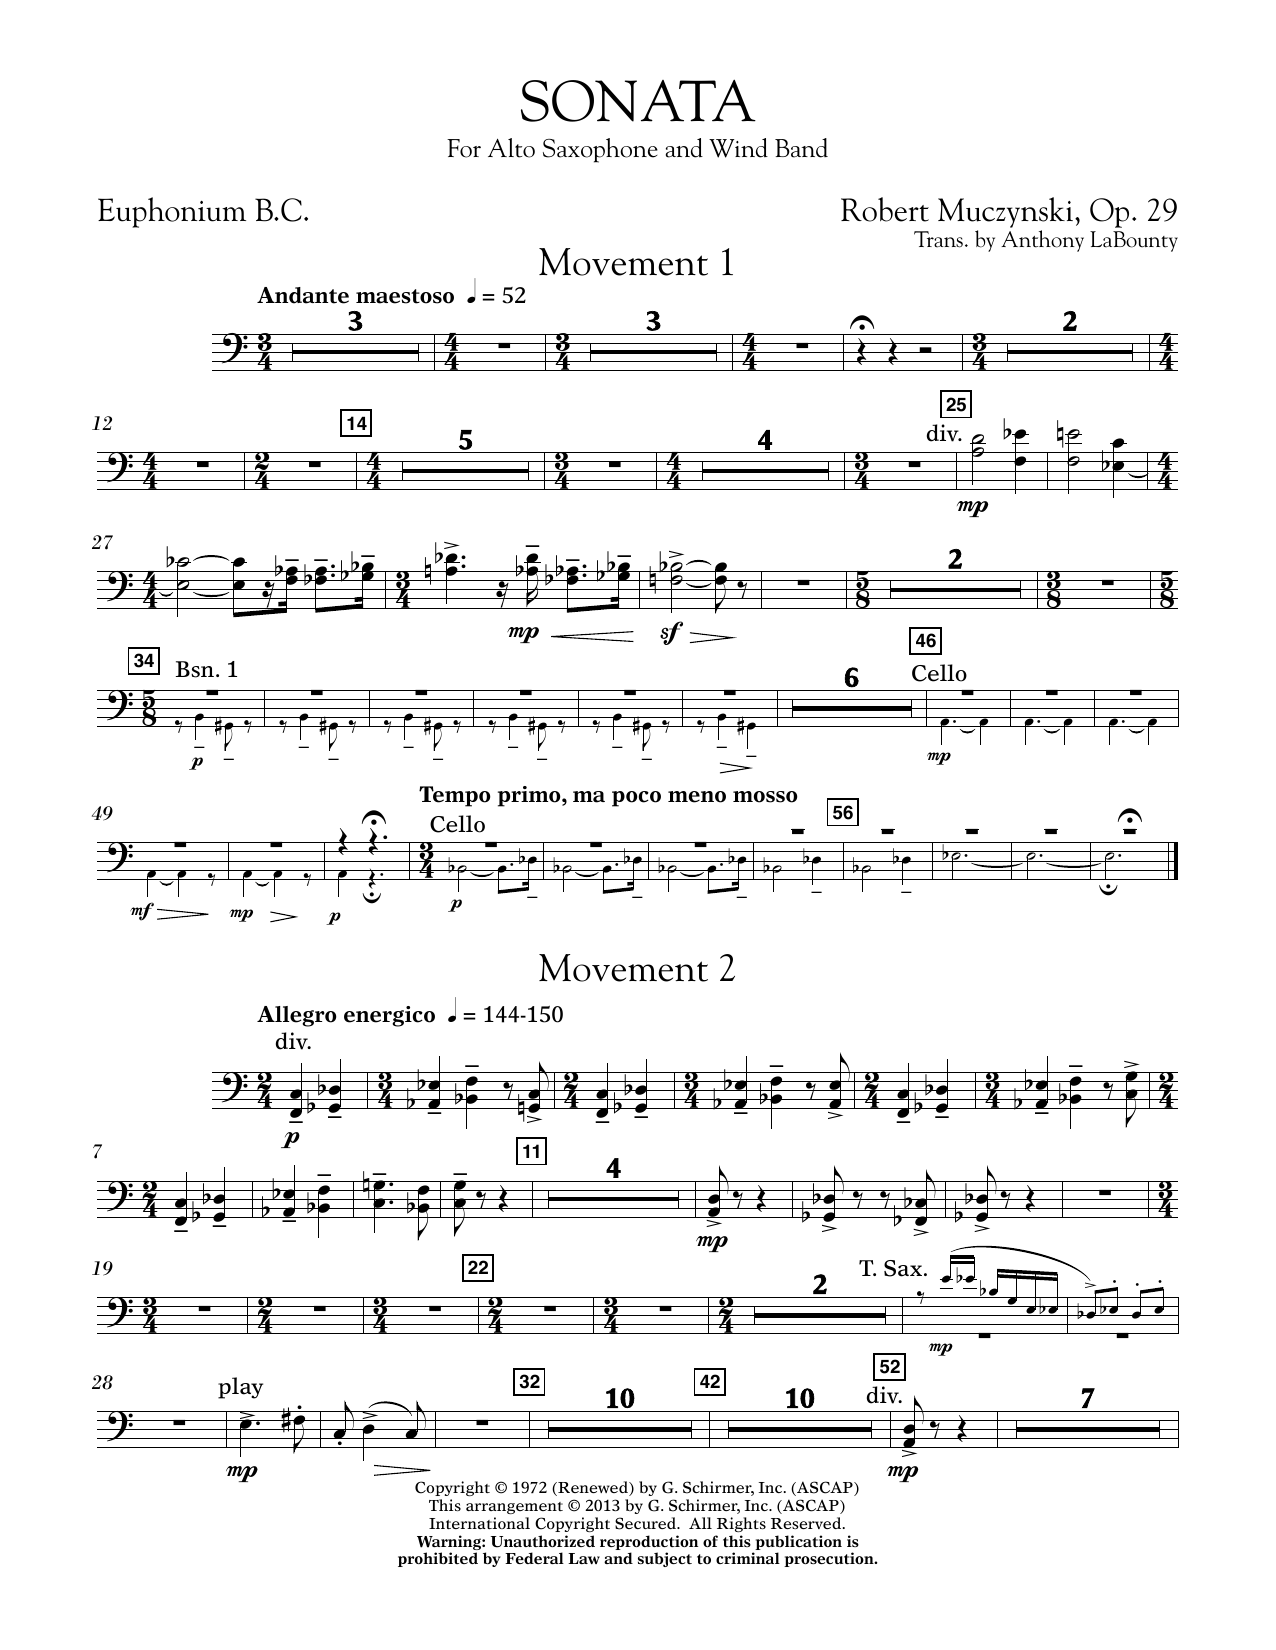 Sonata for Alto Saxophone, Op. 29 - Euphonium in Bass Clef (Concert Band)